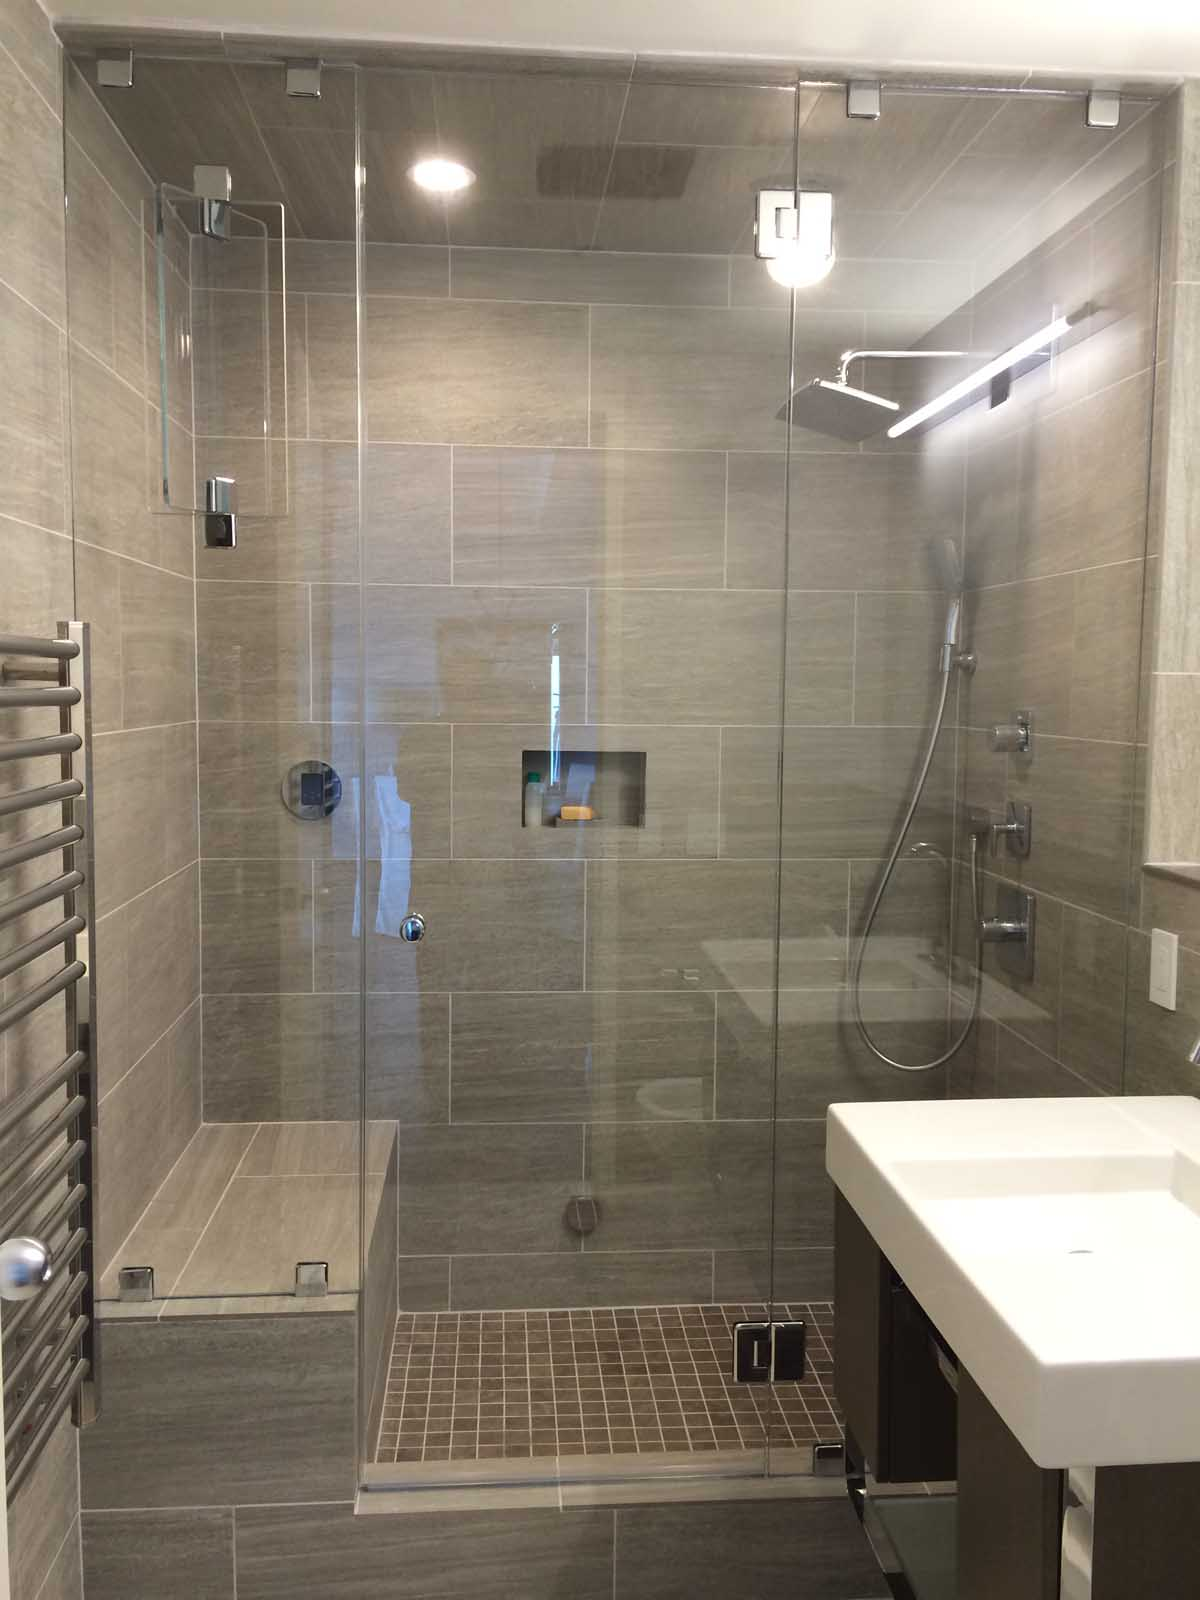 Dorchester ave. Boston - After Bathroom Remodel with High End Tiled Steam Shower